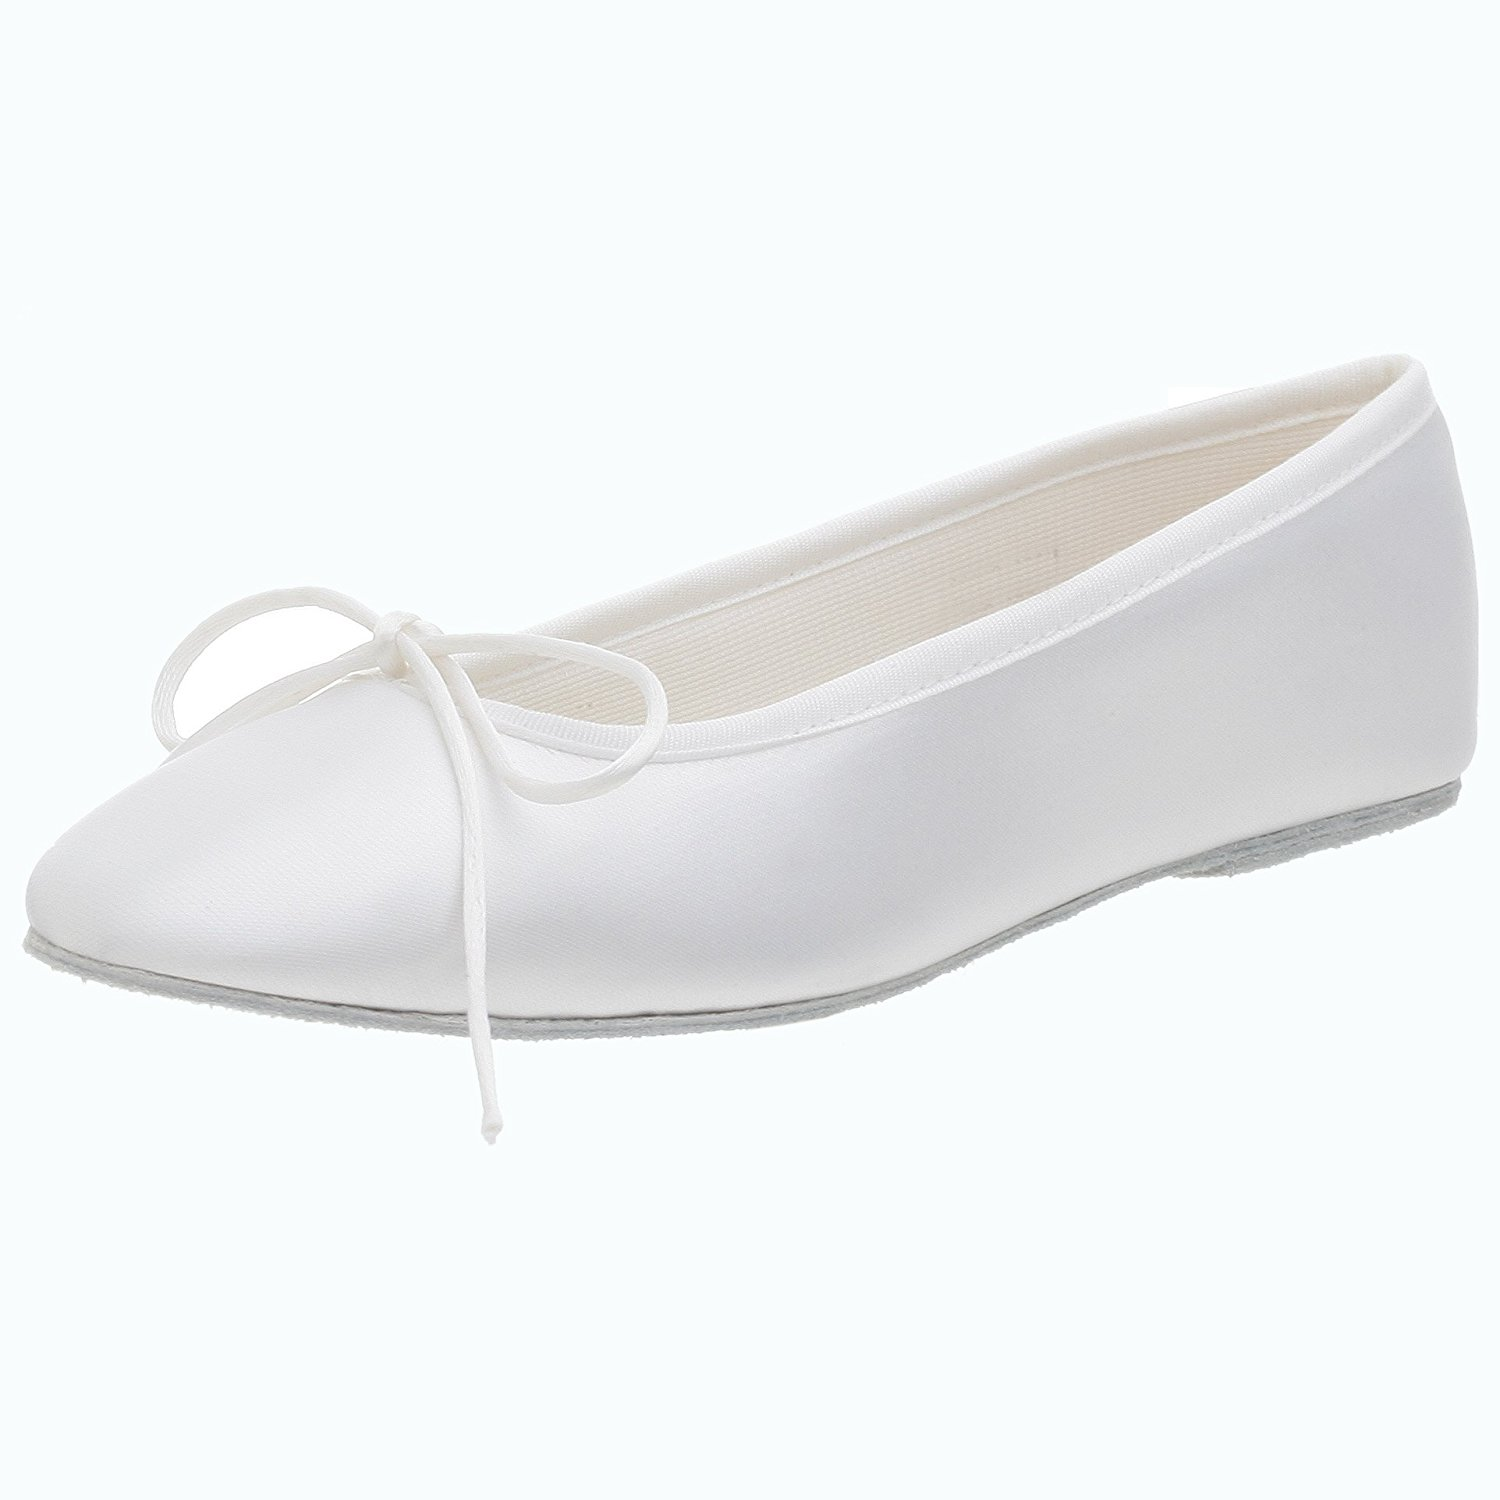 Touch Ups Women's Ballet Dyeable Flat